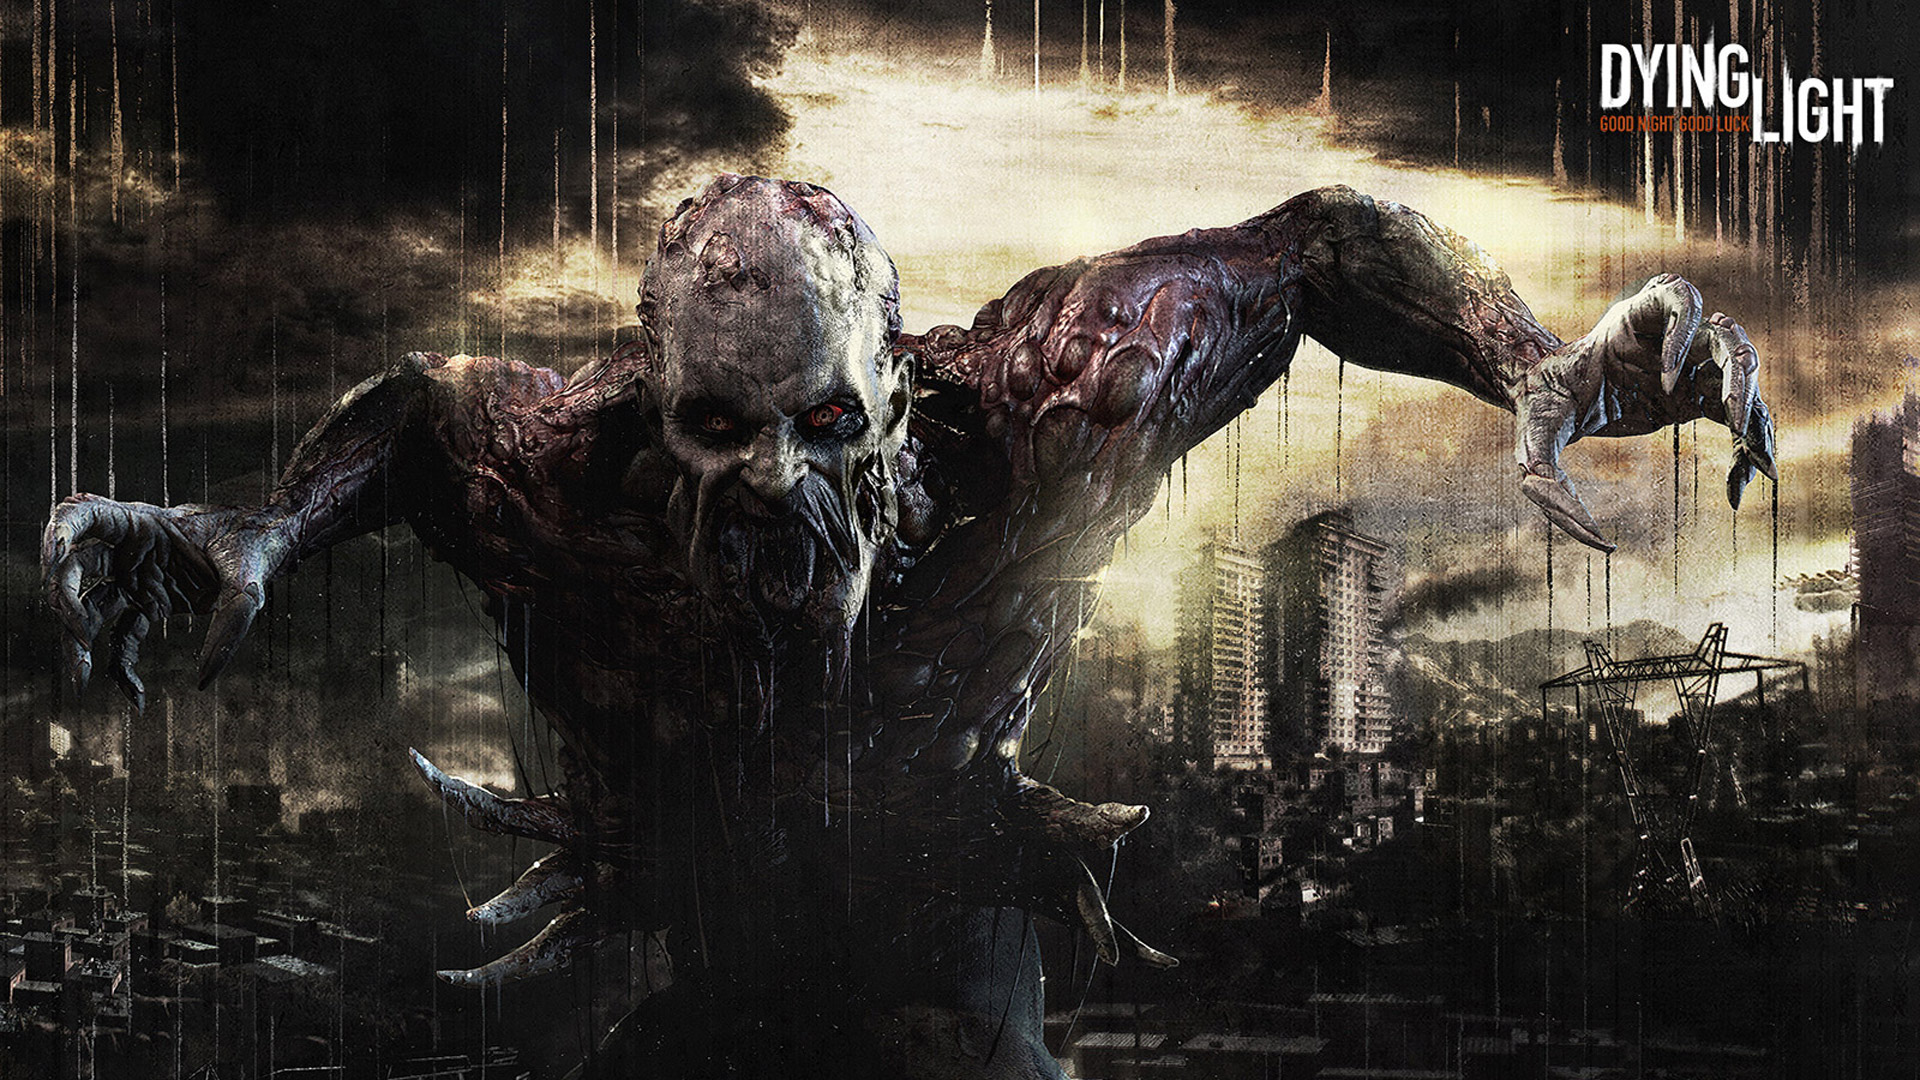 Dying Light wallpaper 1